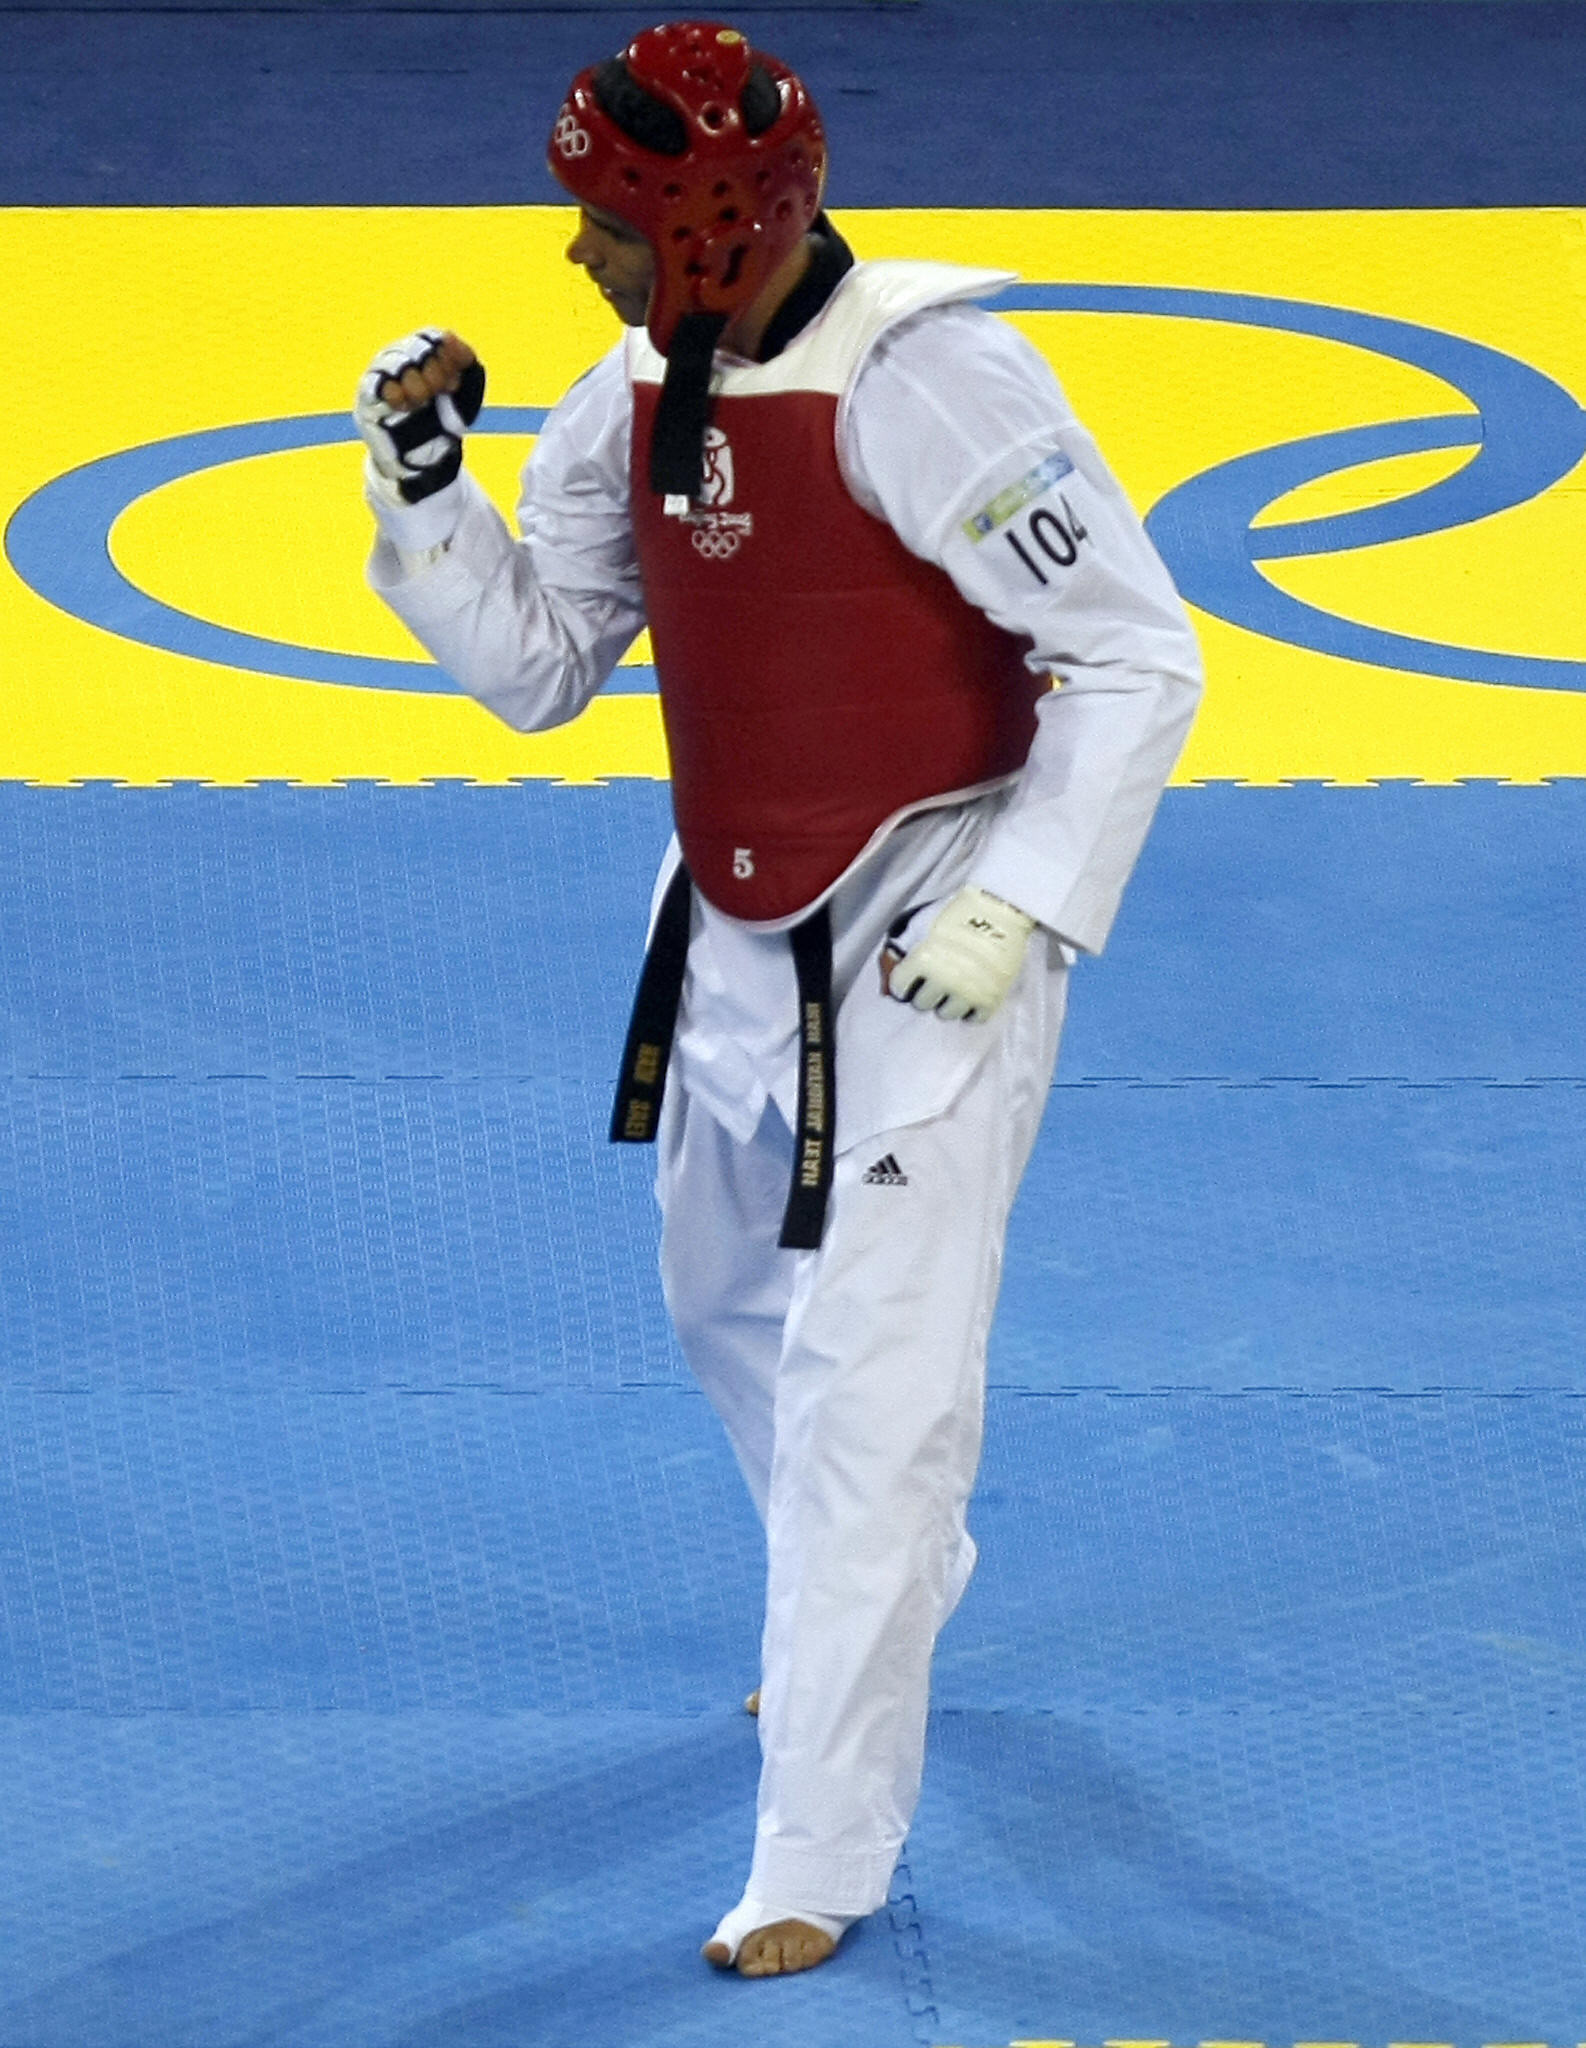 Taekwondo's Hadi Saei is Iran's most successful Olympian  ©Getty Images